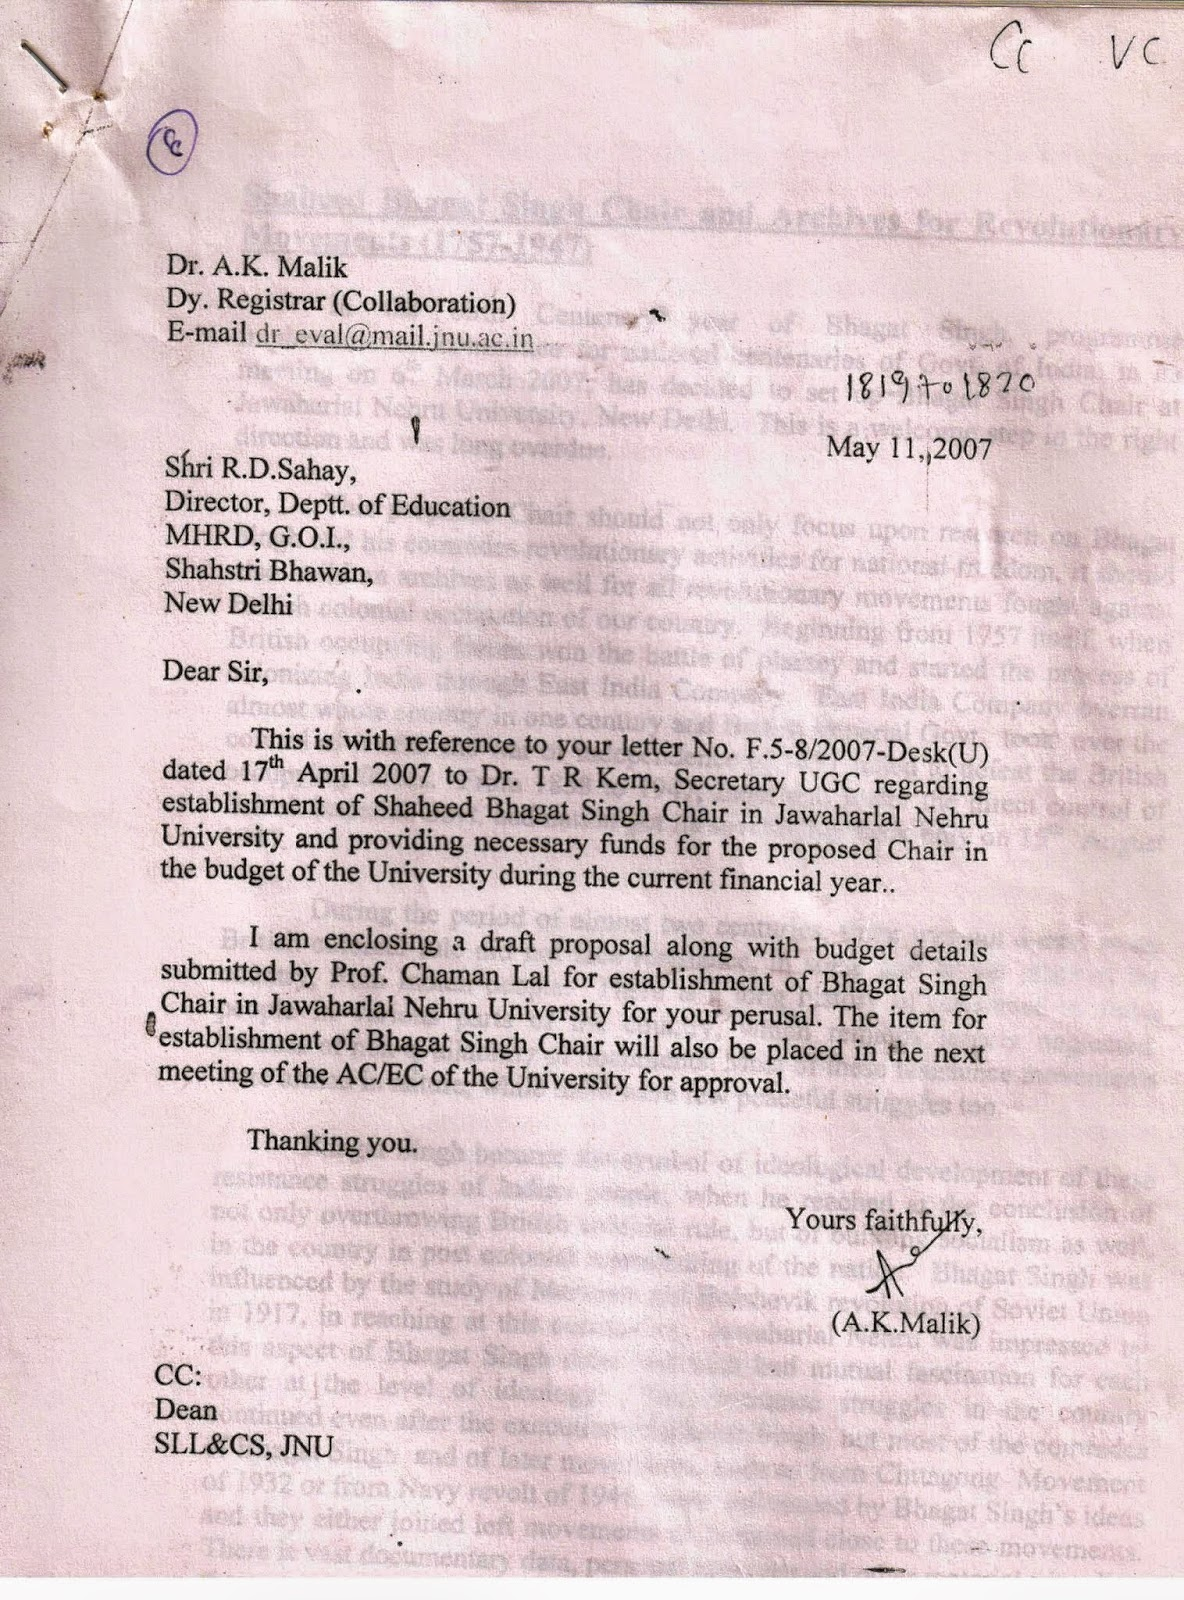 bhagat singh study chaman lal sad story of bhagat singh chair in jnu responded on 11th 2007 to govt of accepting the offer and submitted my proposal for the chair